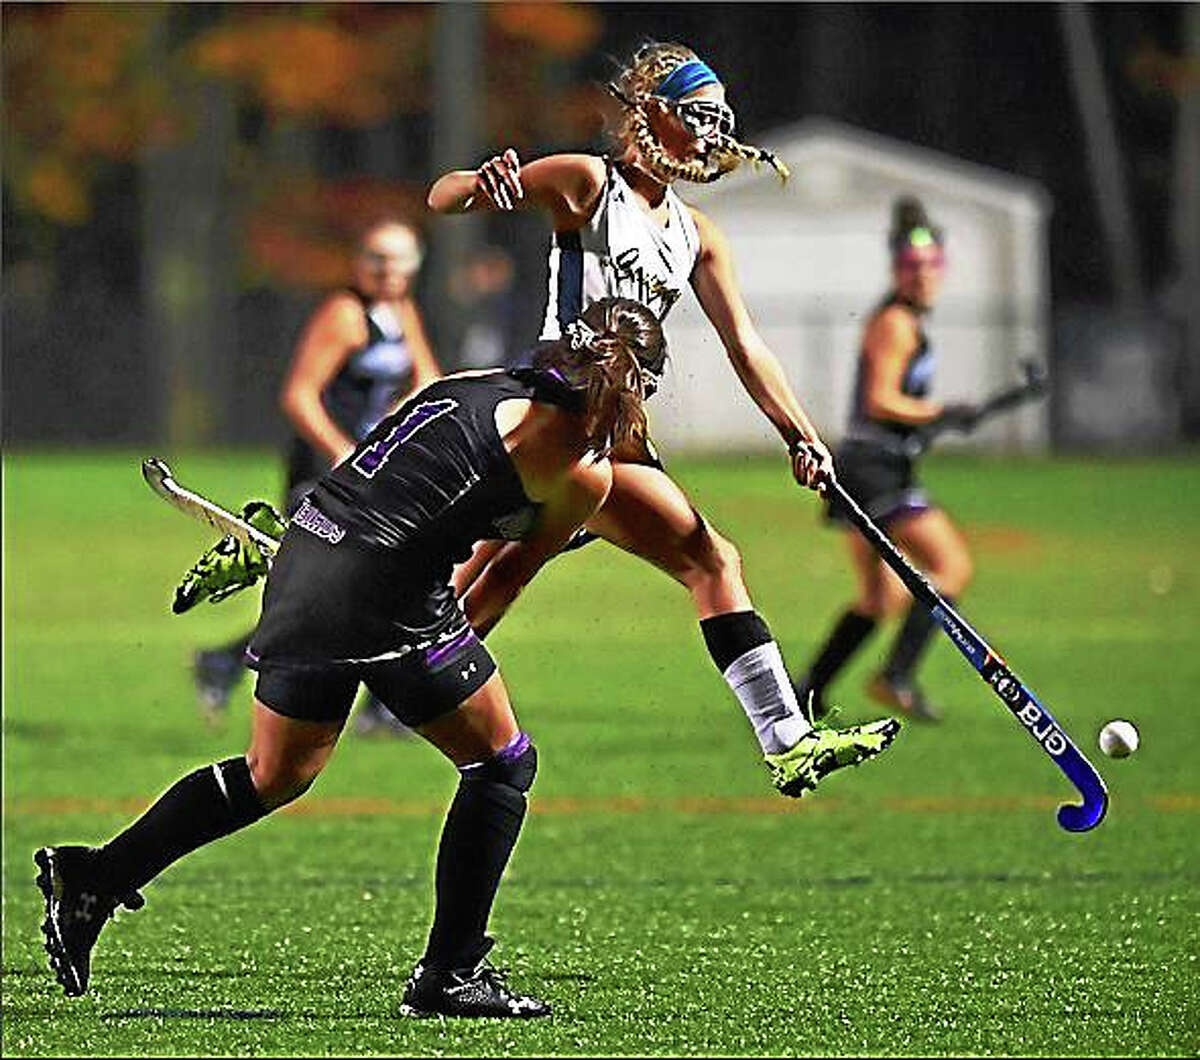 The Haddam-Killingworth Cougars defeated the North Branford Thunderbirds, 3-2, in the SLC field hockey championship Thursday at the Indian River Athletic Complex in Clinton.